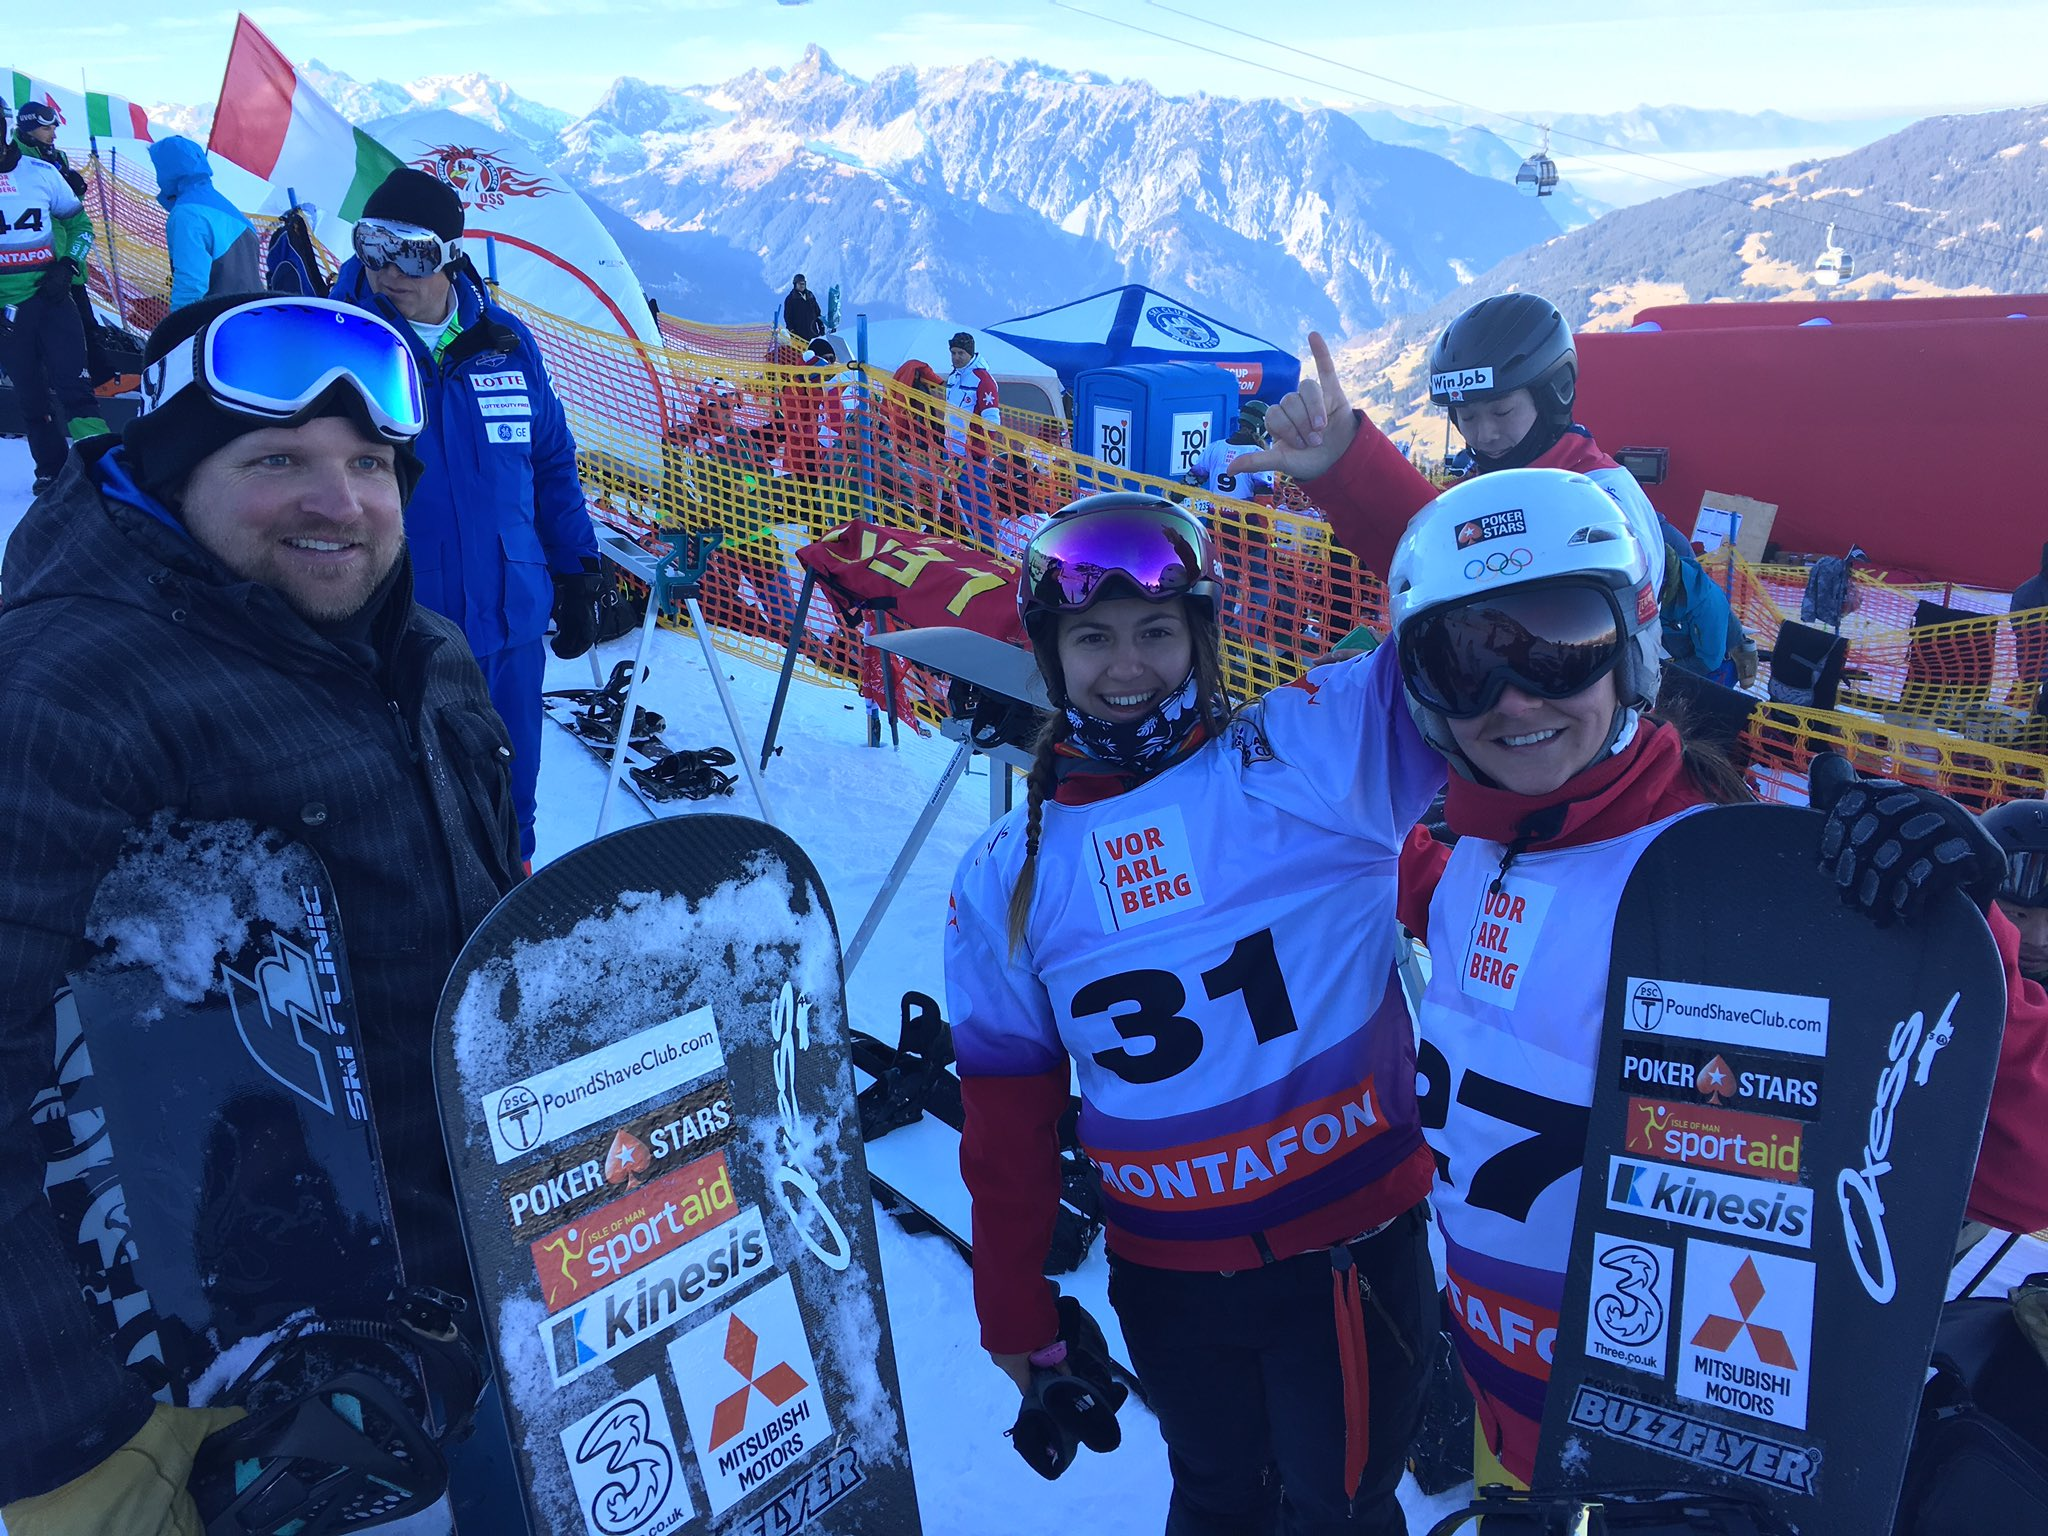 First World Cup - Montafon Dec 2016